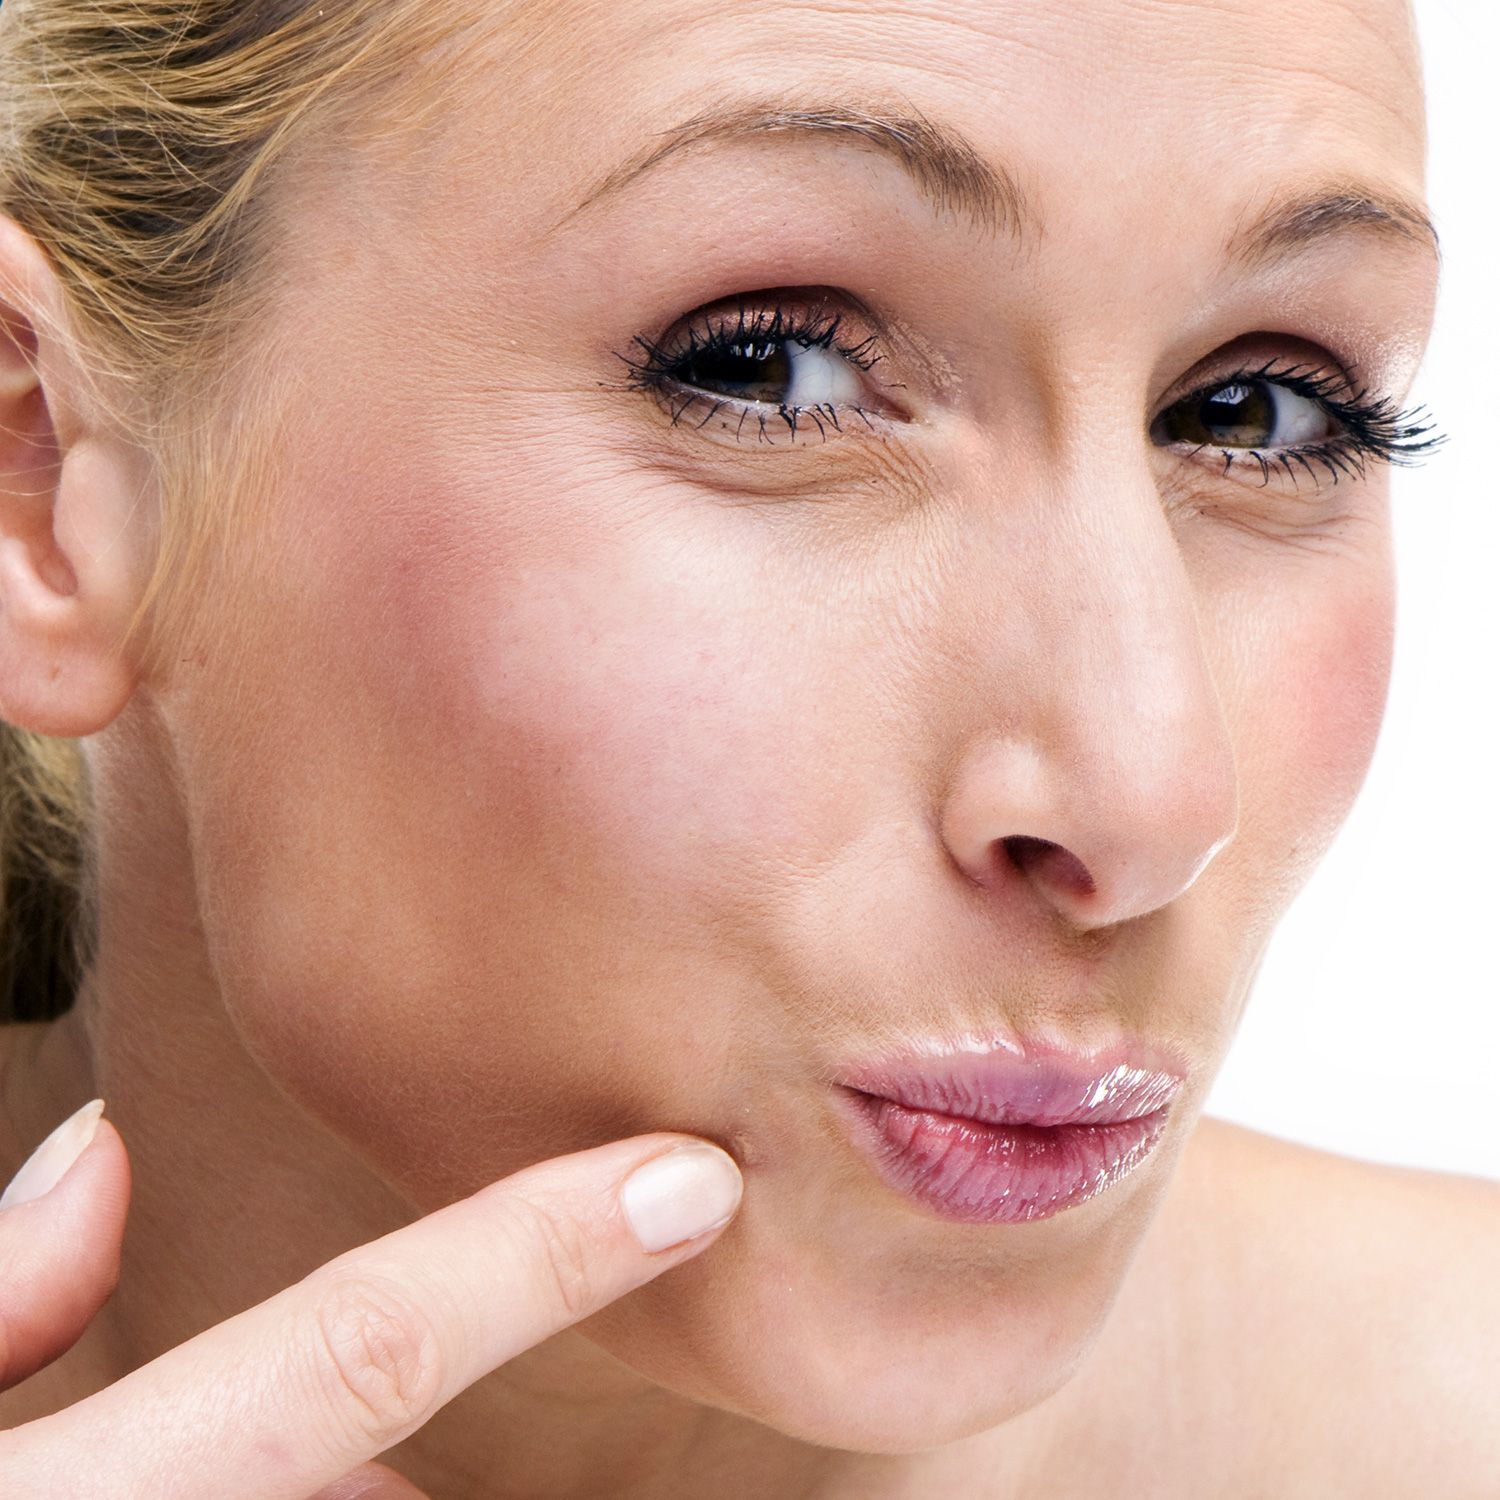 how to get rid of a wart on my face